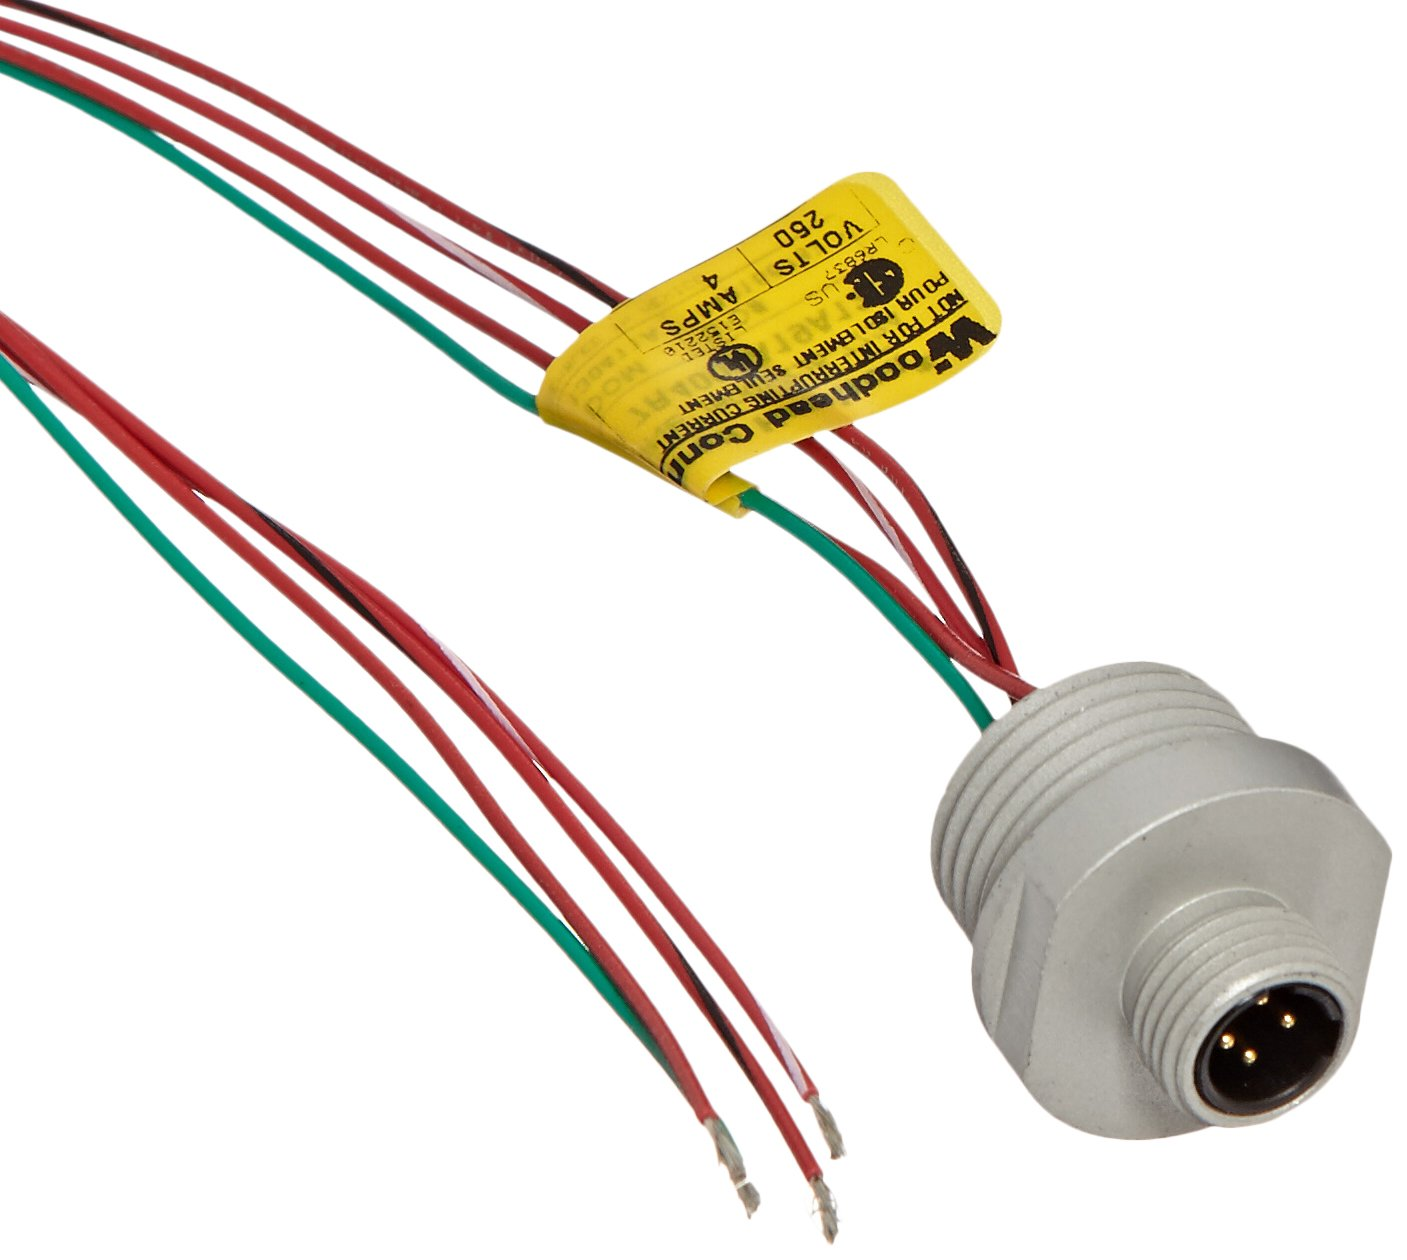 Brad 7R4006A19A120 Micro-Change Dual Key Receptacle, Male Straight, 1/2''-14NPT Mounting Thread Size, 4 Pole, UL1061 Cable Type, PVC Cable Jacket, 22AWG Wire Size, 4.0A Max Current Rating, 250V AC/DC Max Voltage, 12'' Cable Length, Front Panel Mount (Pack o